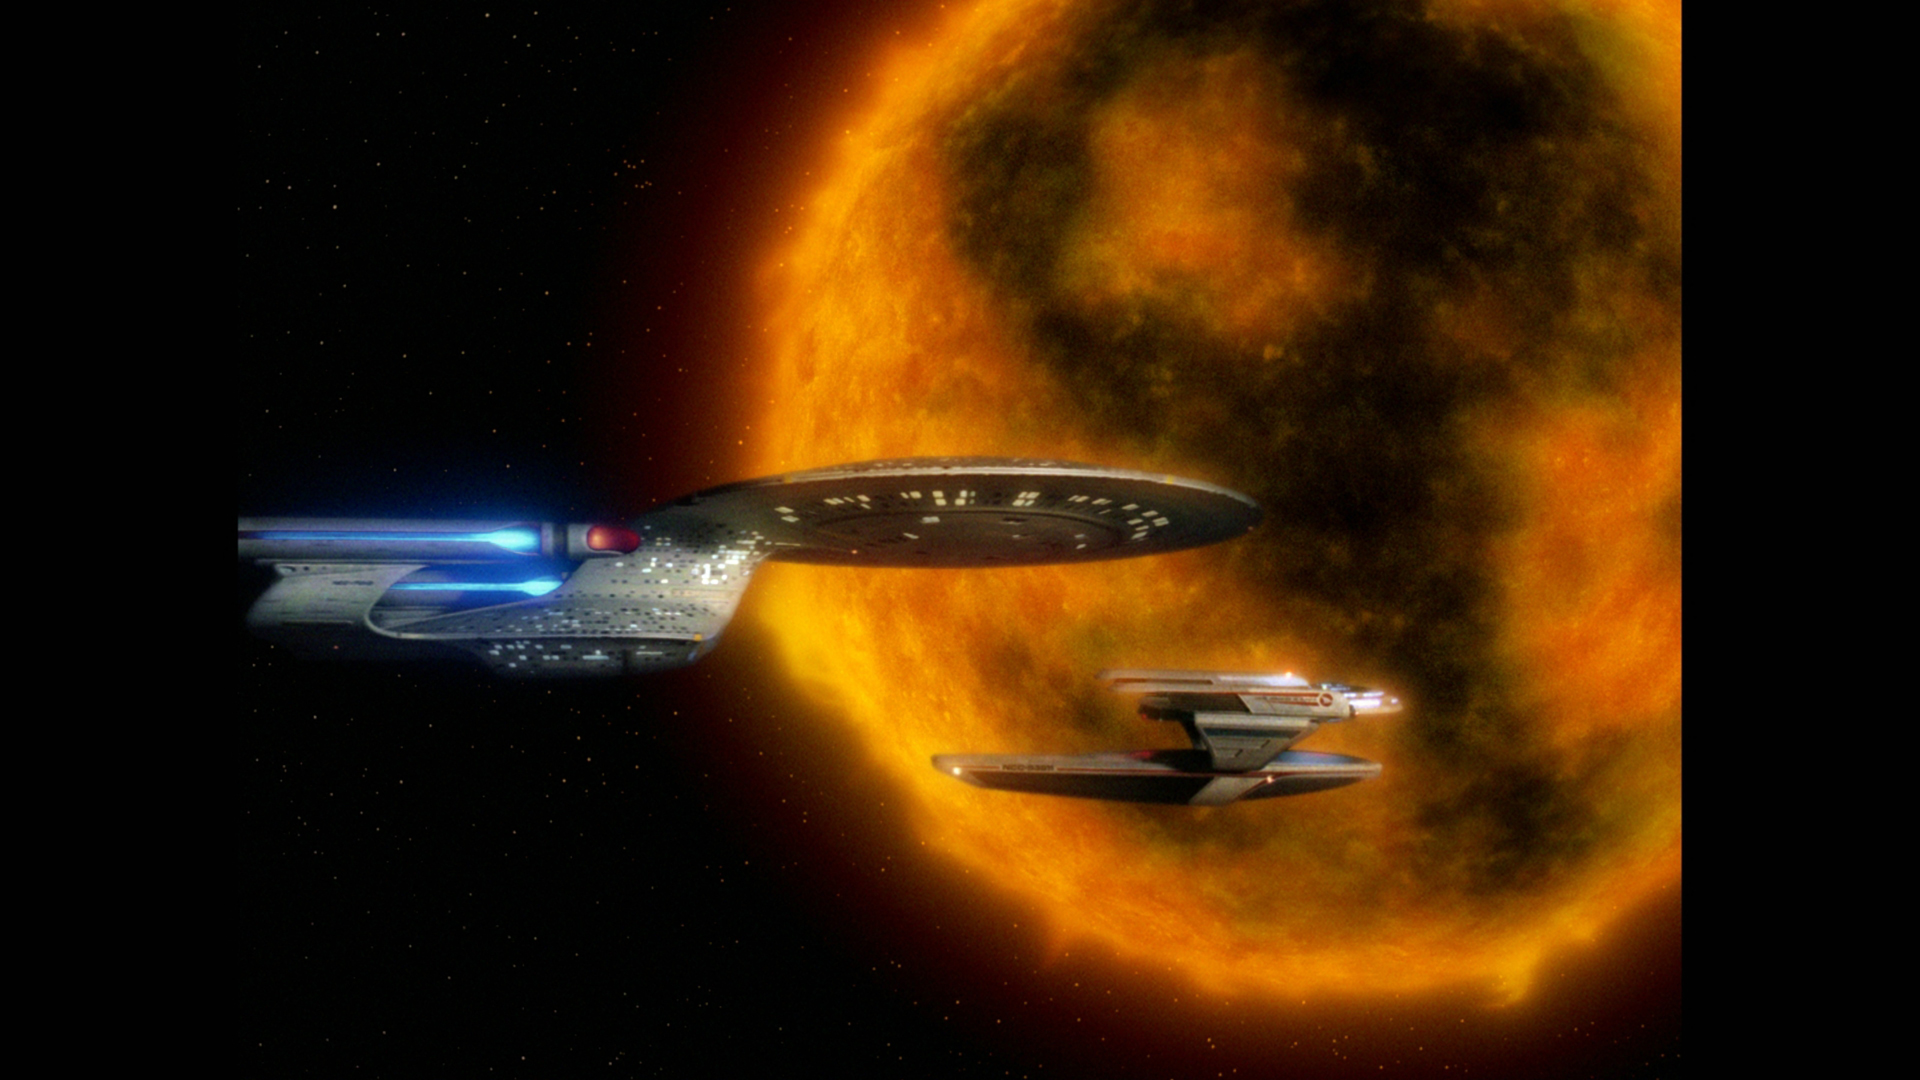 Star Trek: The Next Generation Season 1 Blu-ray Release Date Revealed